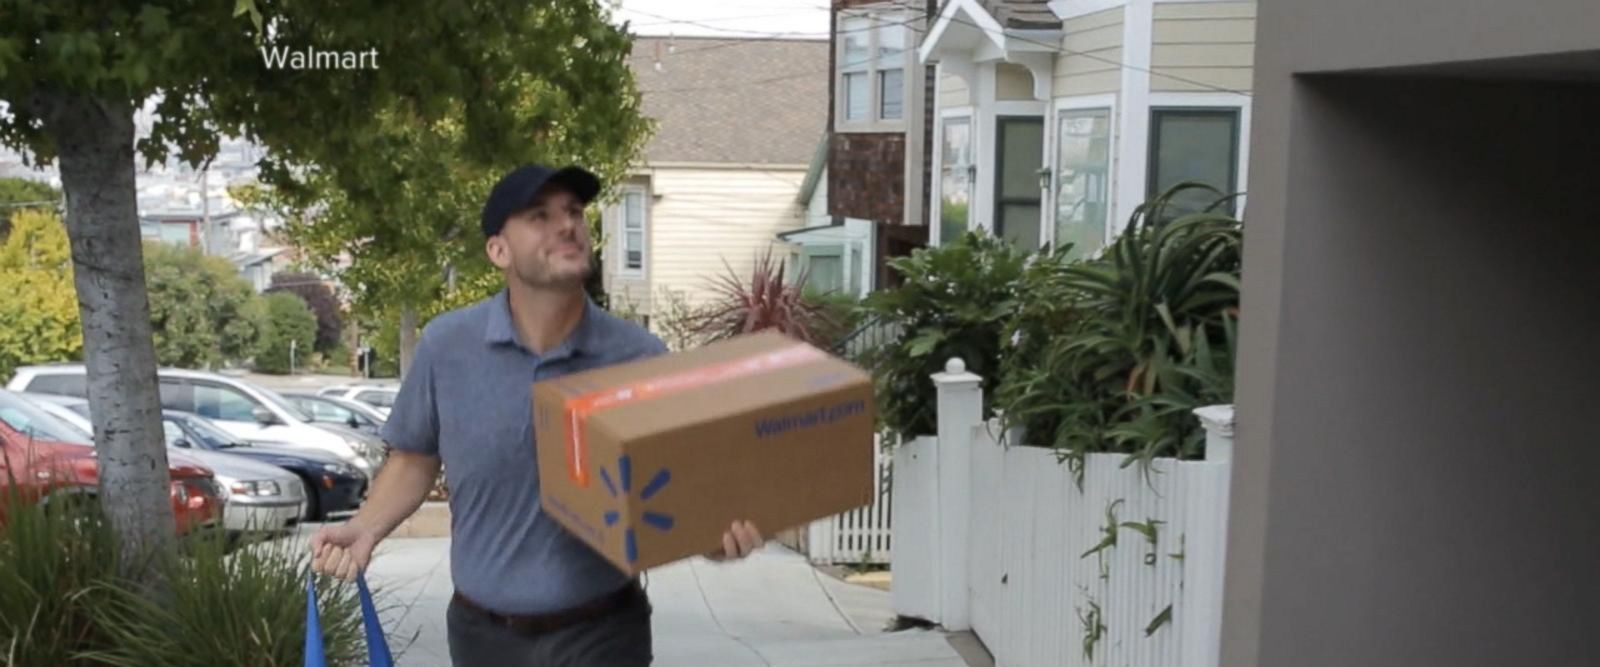 VIDEO: Walmart tests out a new grocery delivery service